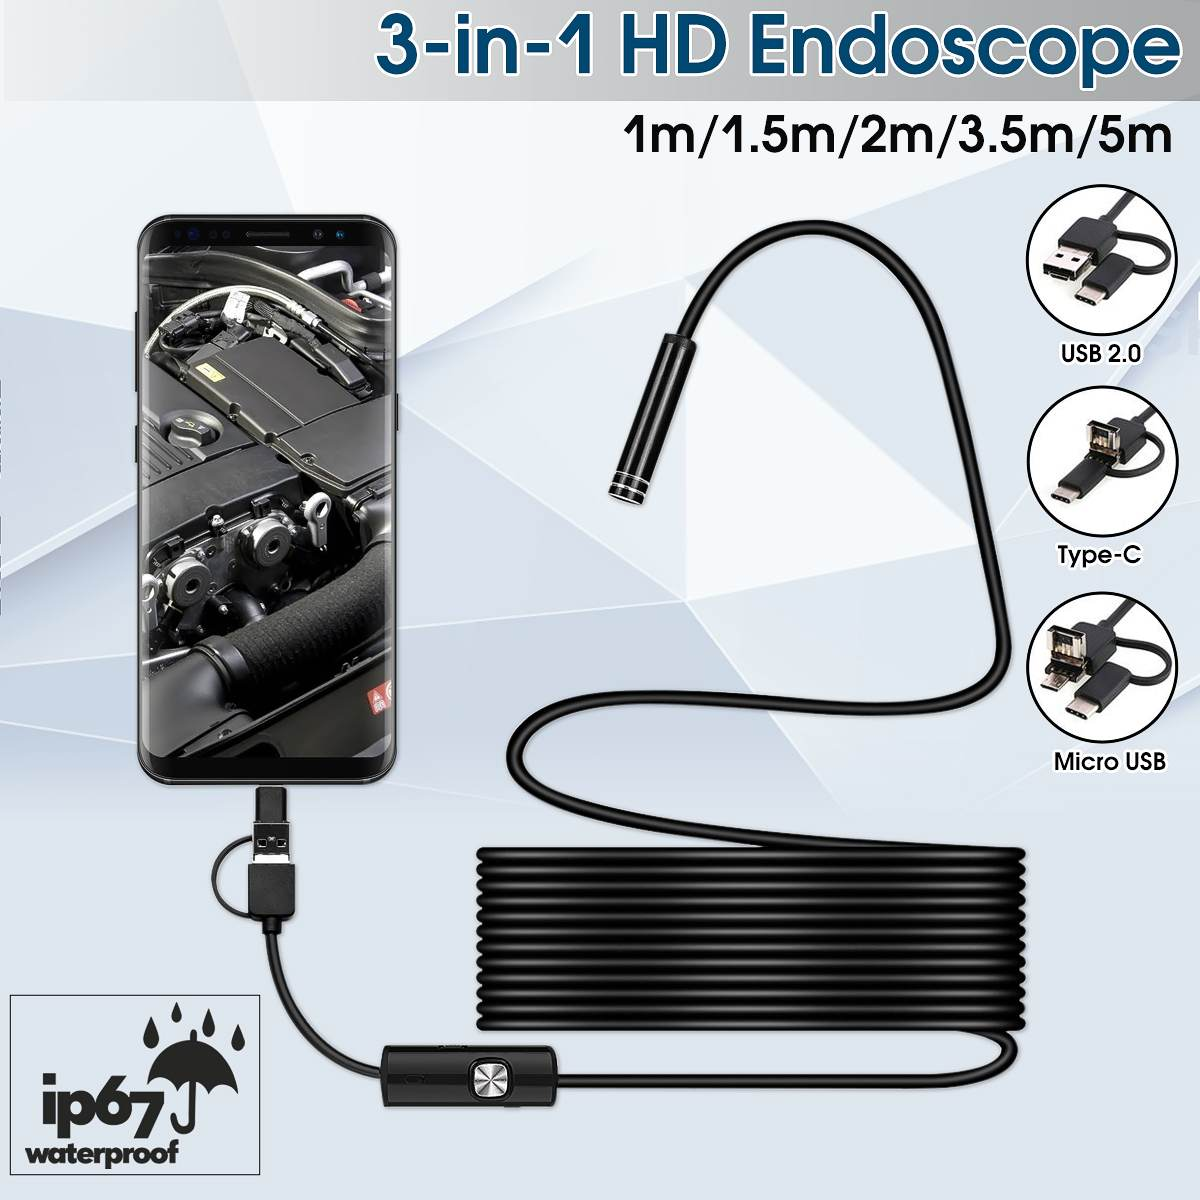 7mm Endoscope USB/Type-C/ Micro USB 3-in-1 Endorscope Camera Flexible IP67 Waterproof Inspection Borescope Camera for Android image